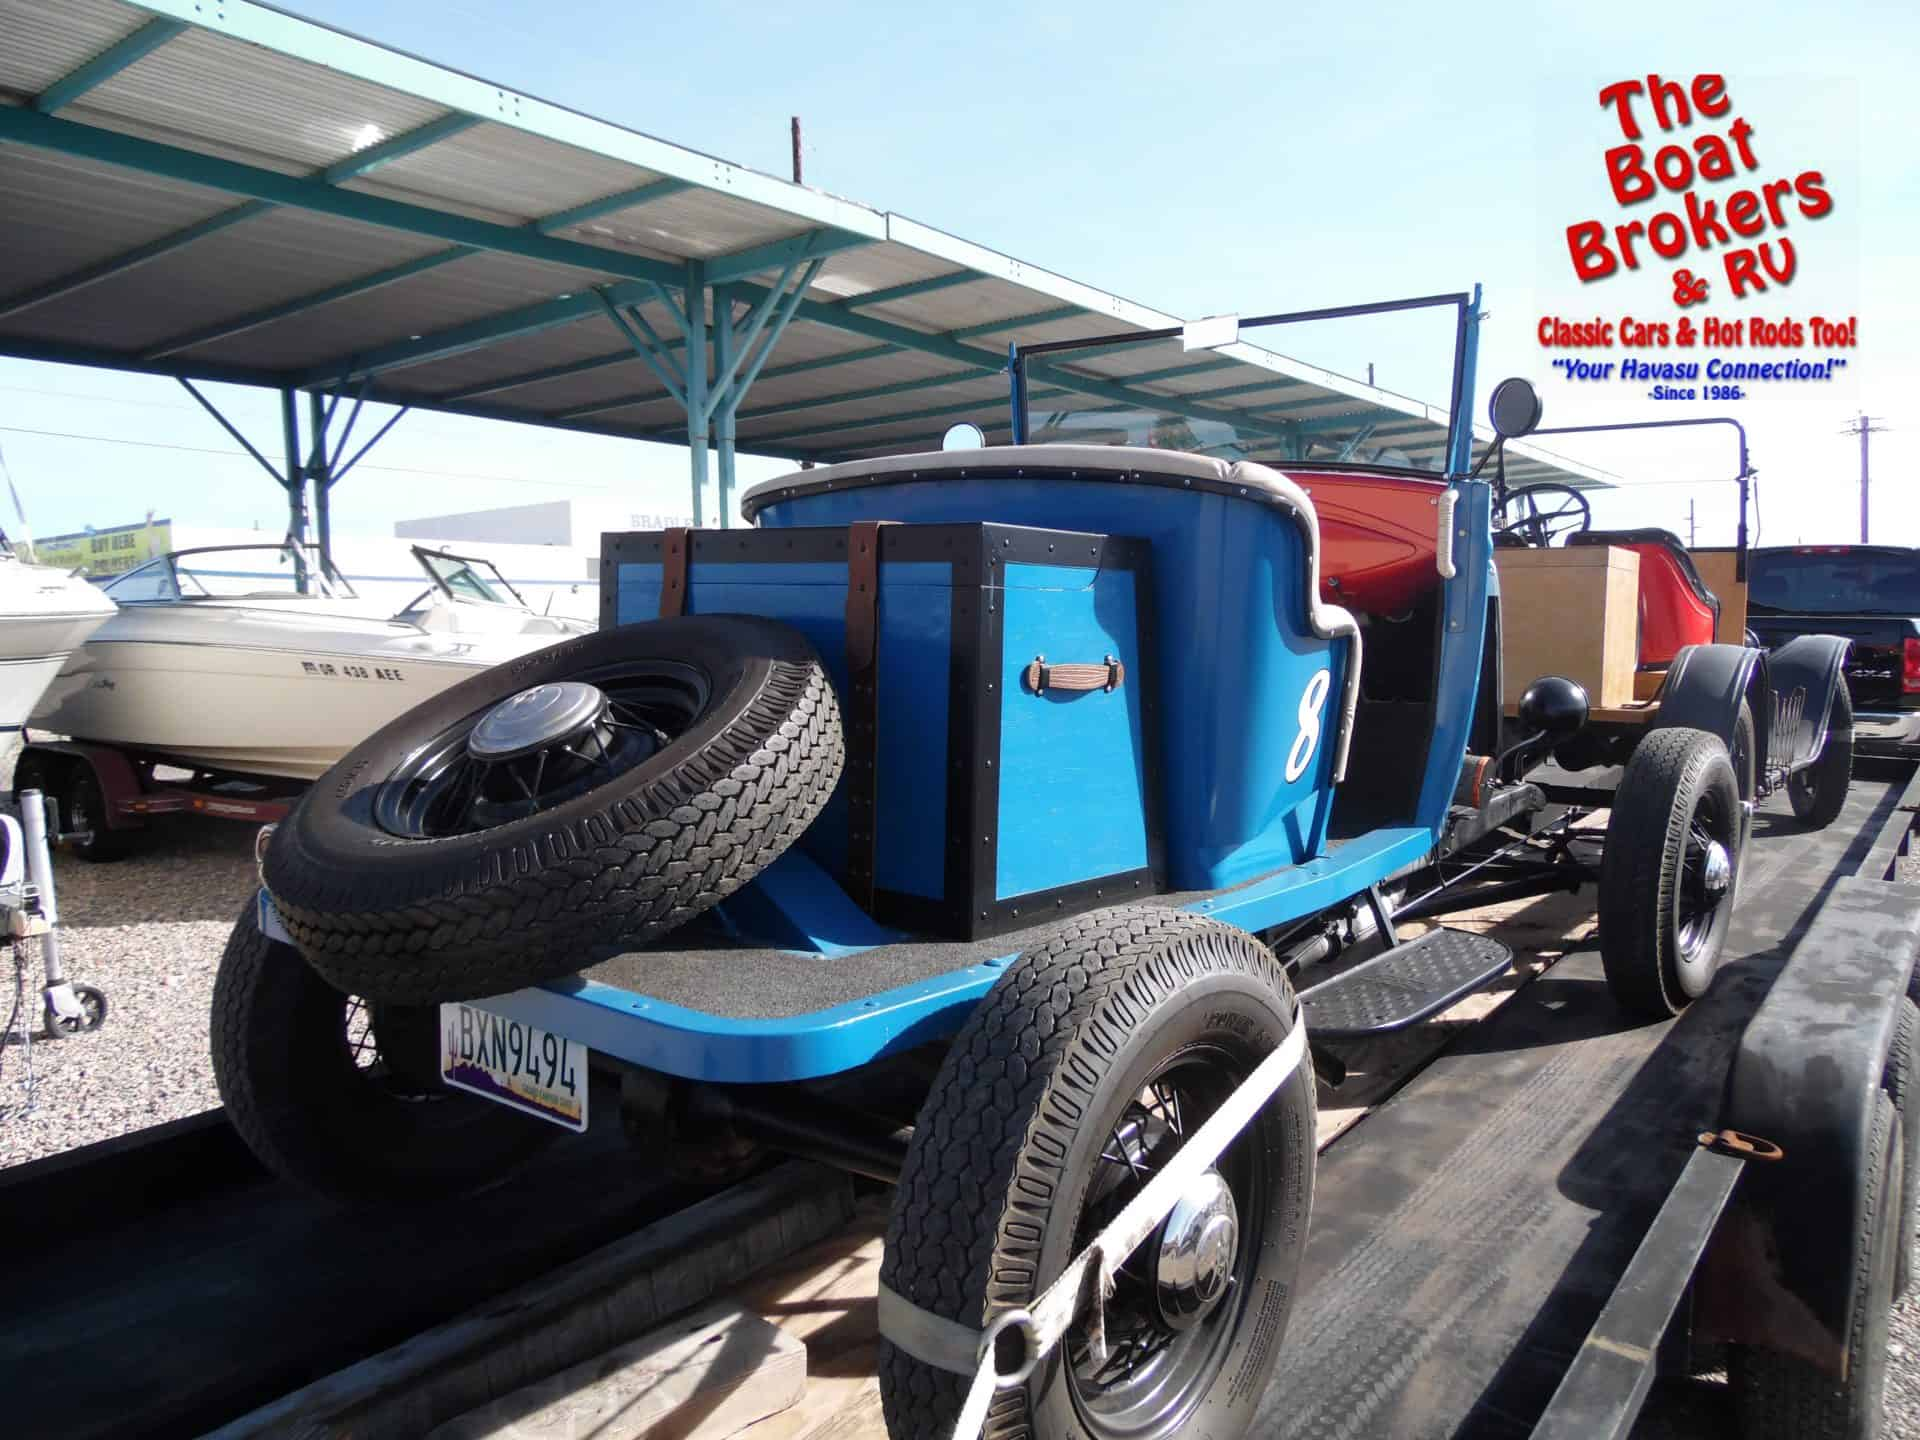 1930 Ford Model A Speedster New amp Used Boats amp RV for